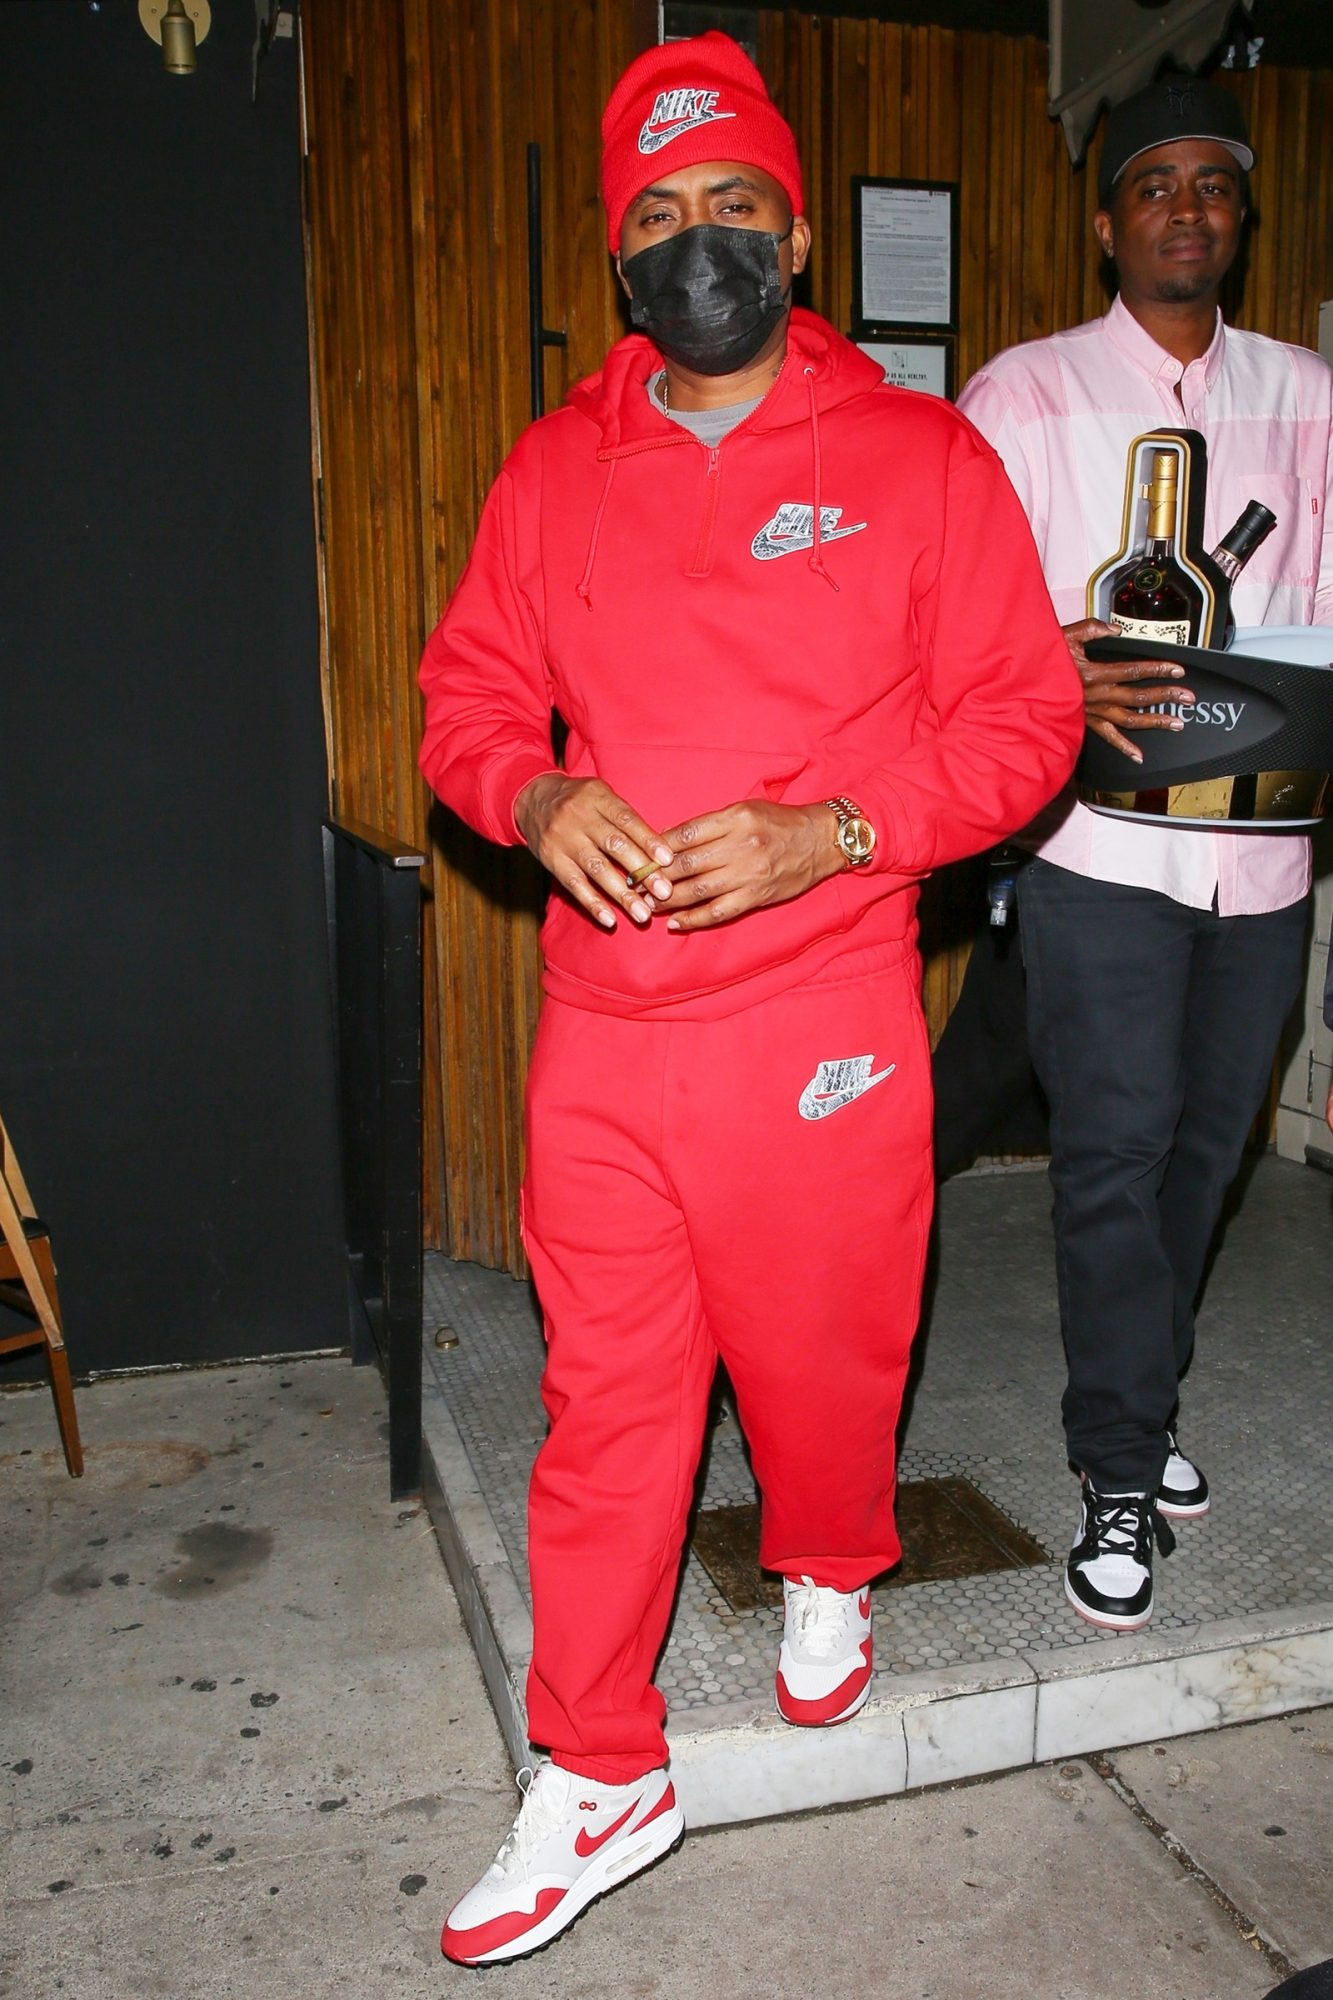 The Rapper Nas was seen leaving The Nice Guy